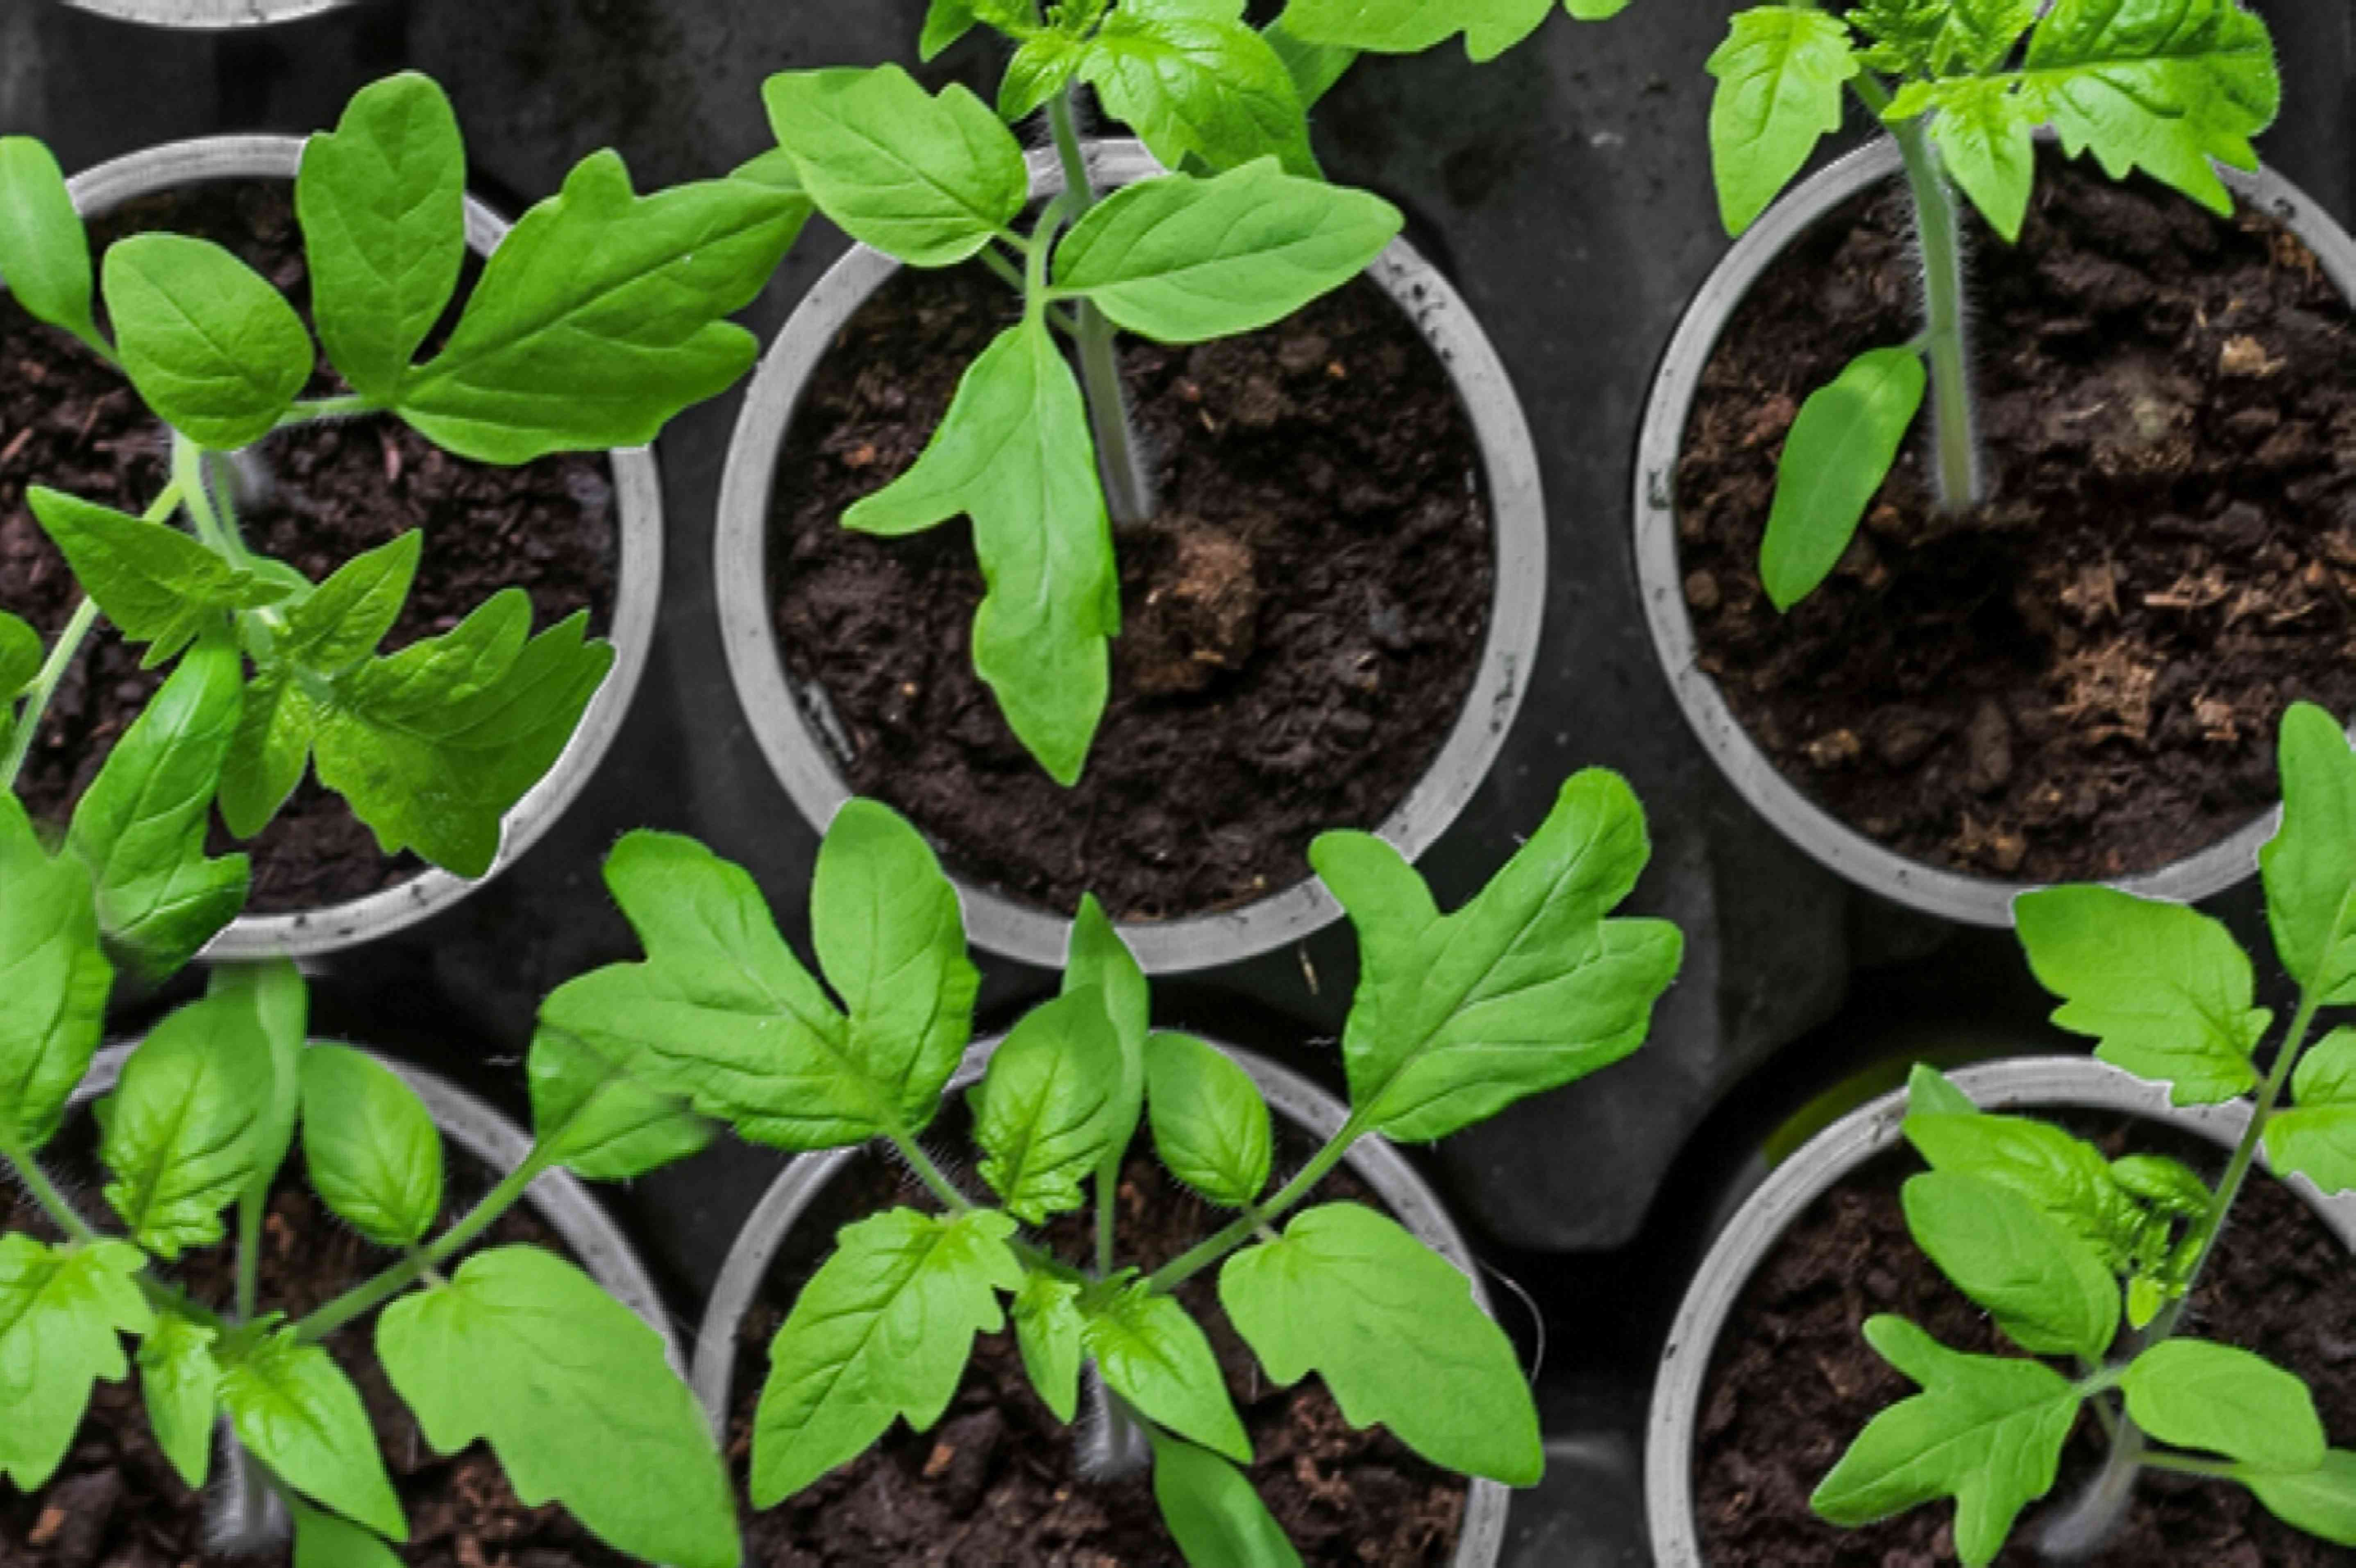 tomato plants in small containers